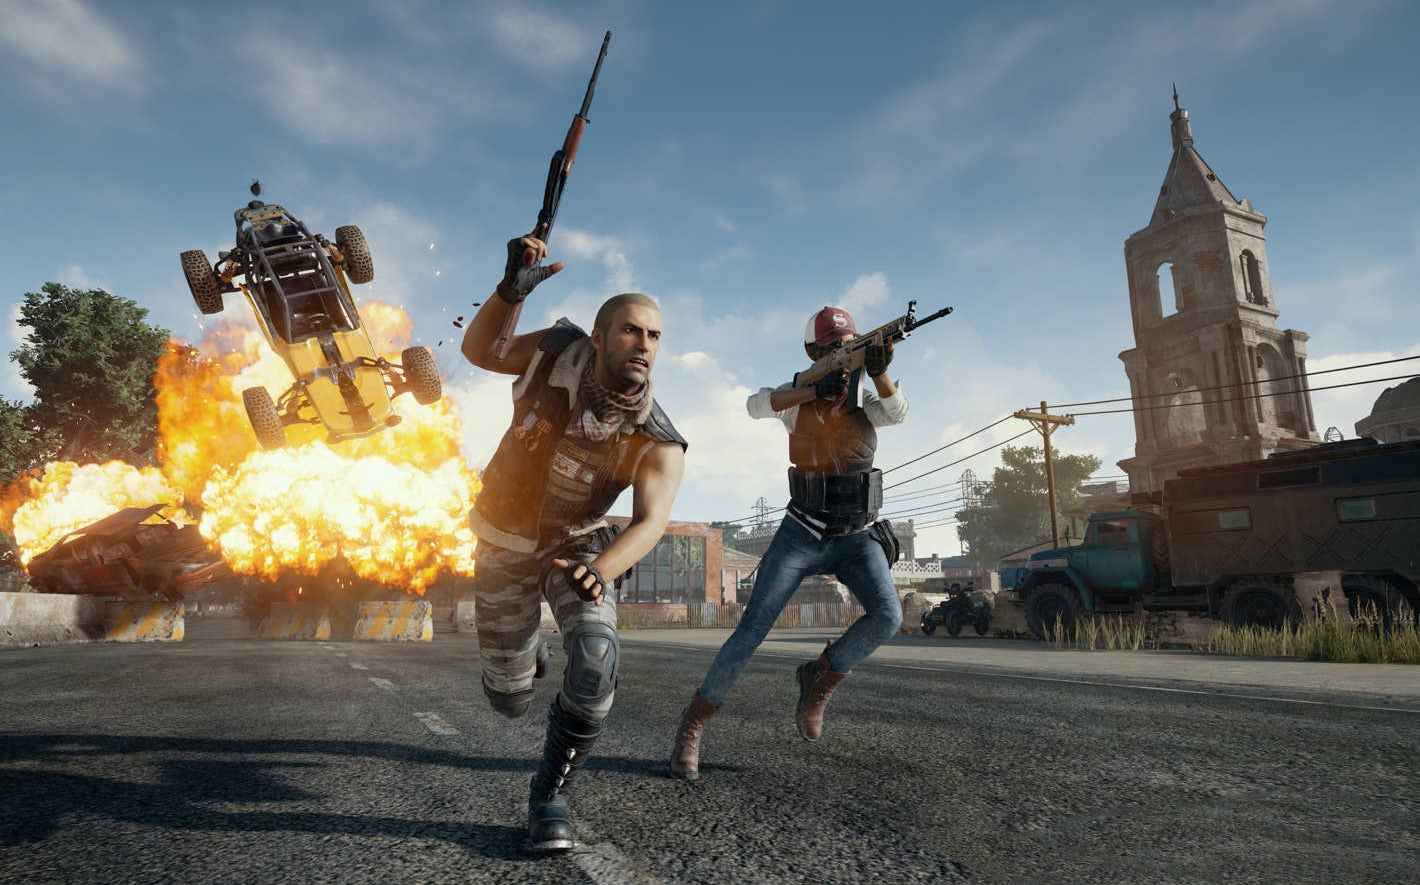 PlayerUnknown teases upcoming fog effect for PUBG